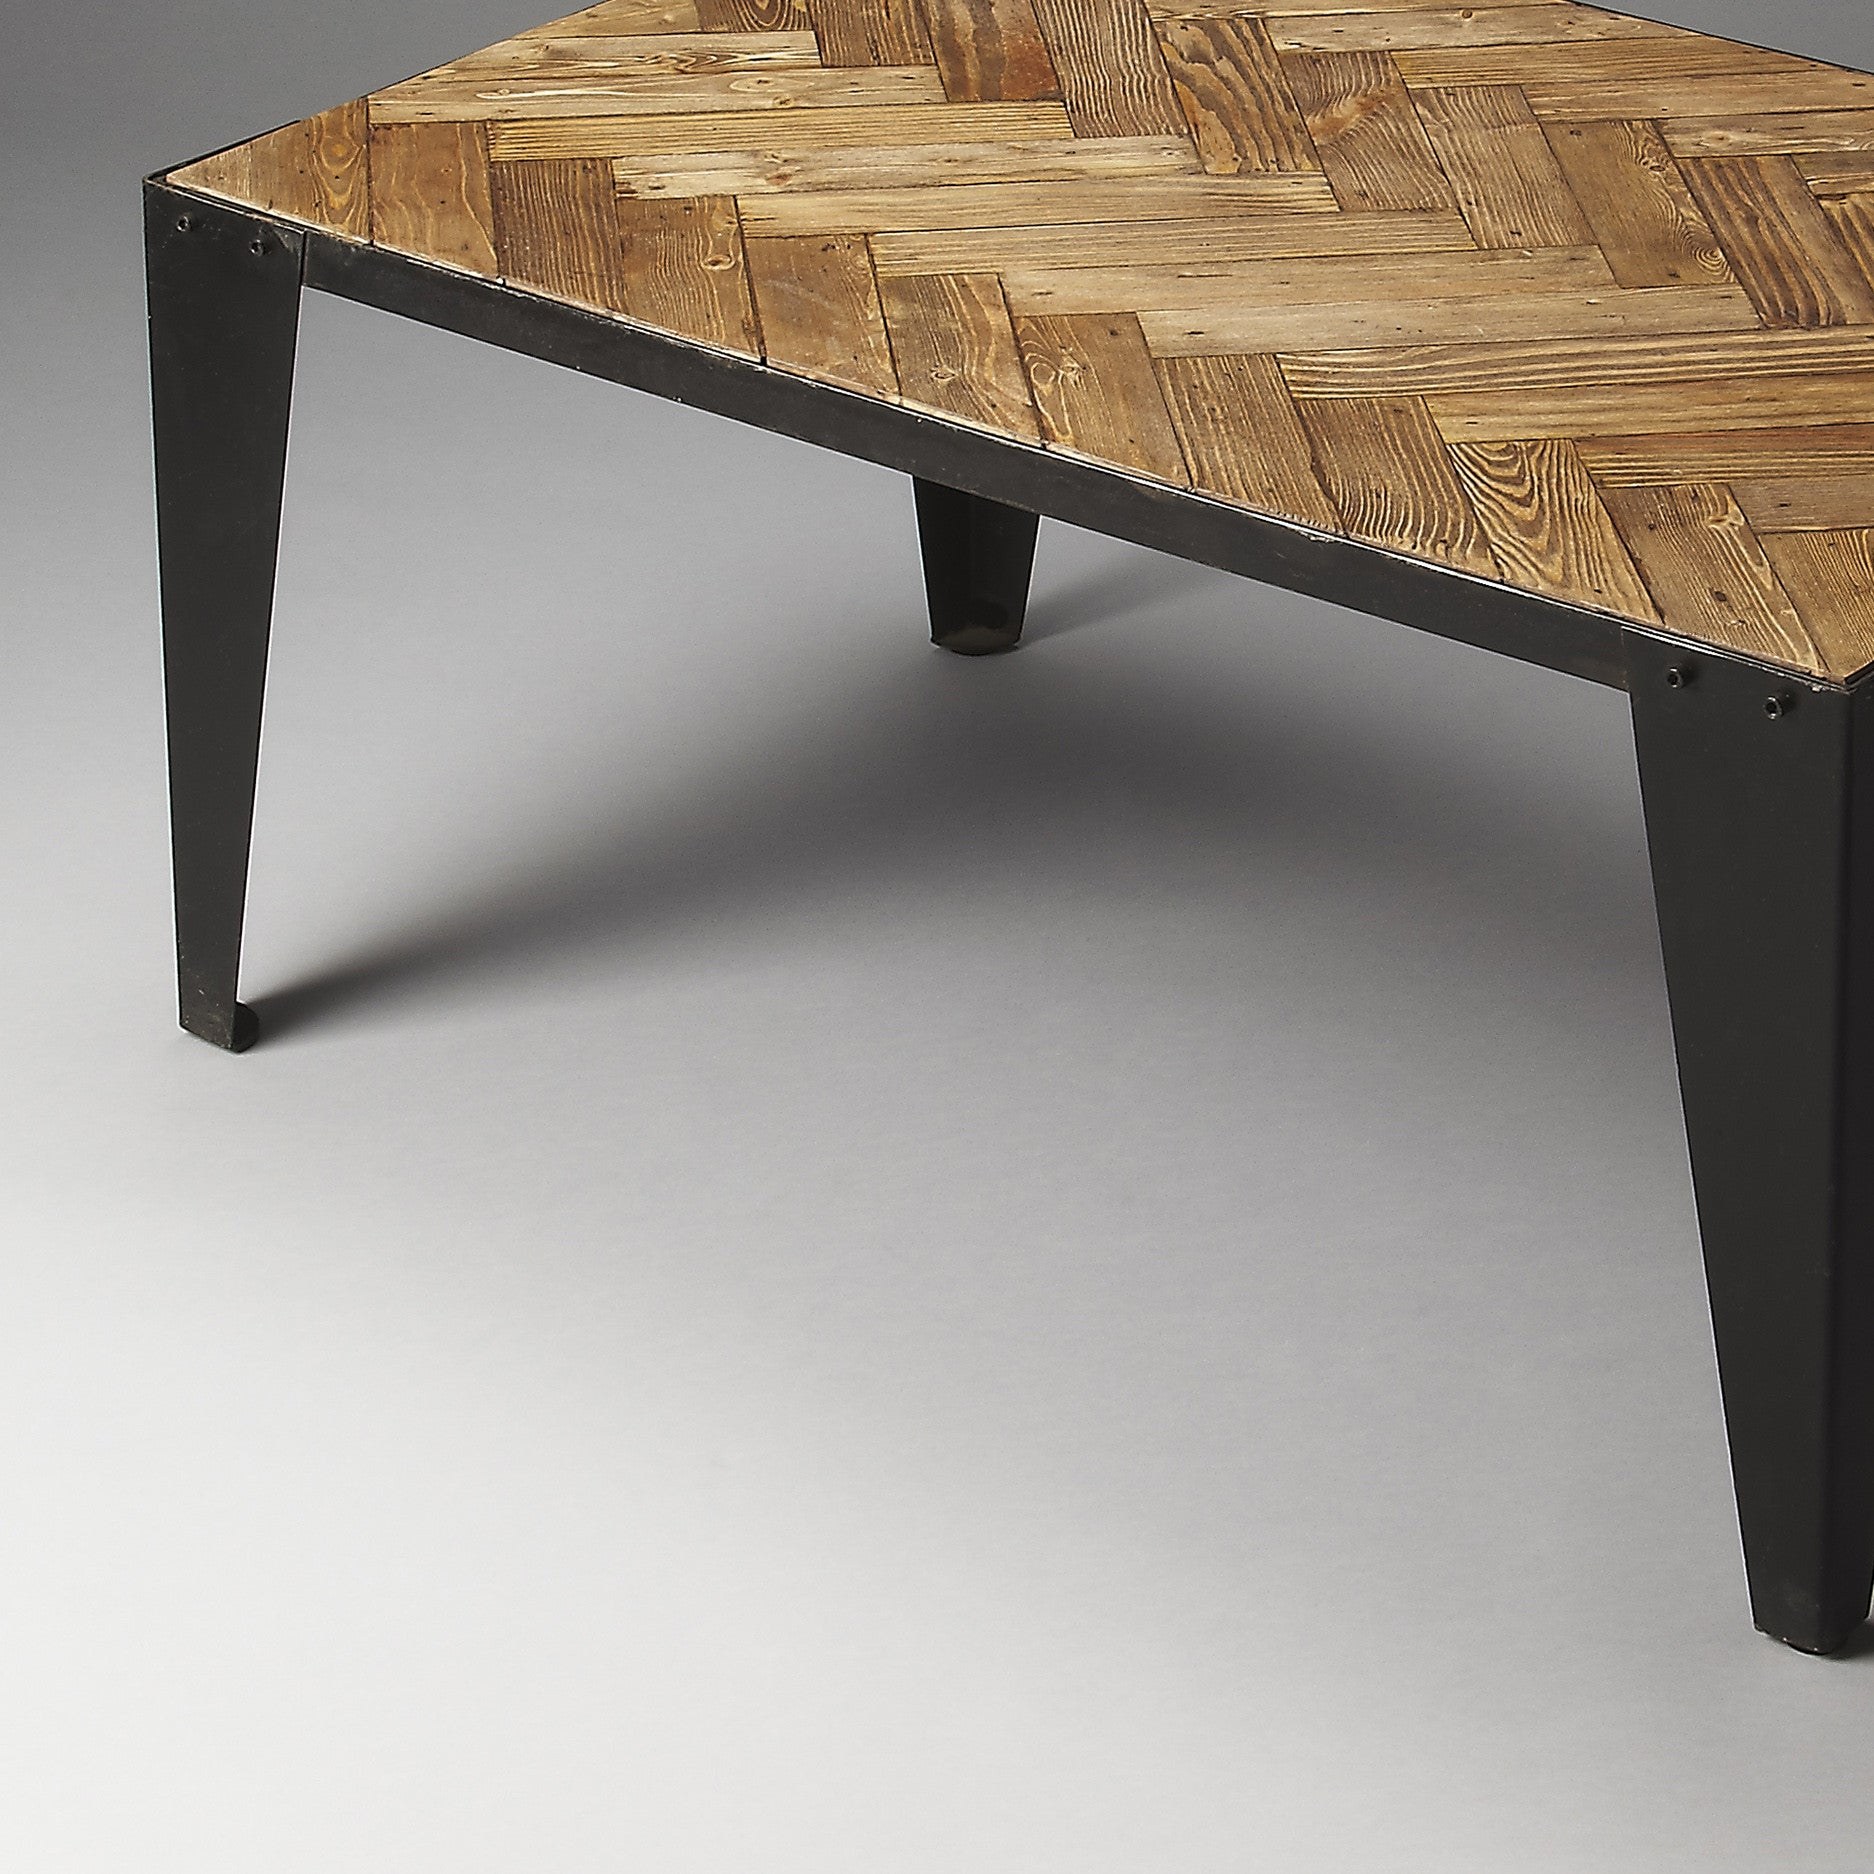 Medieval style furniture and decor woodwaves industrial modern rustic farmhouse metal and wood coffee table geotapseo Images